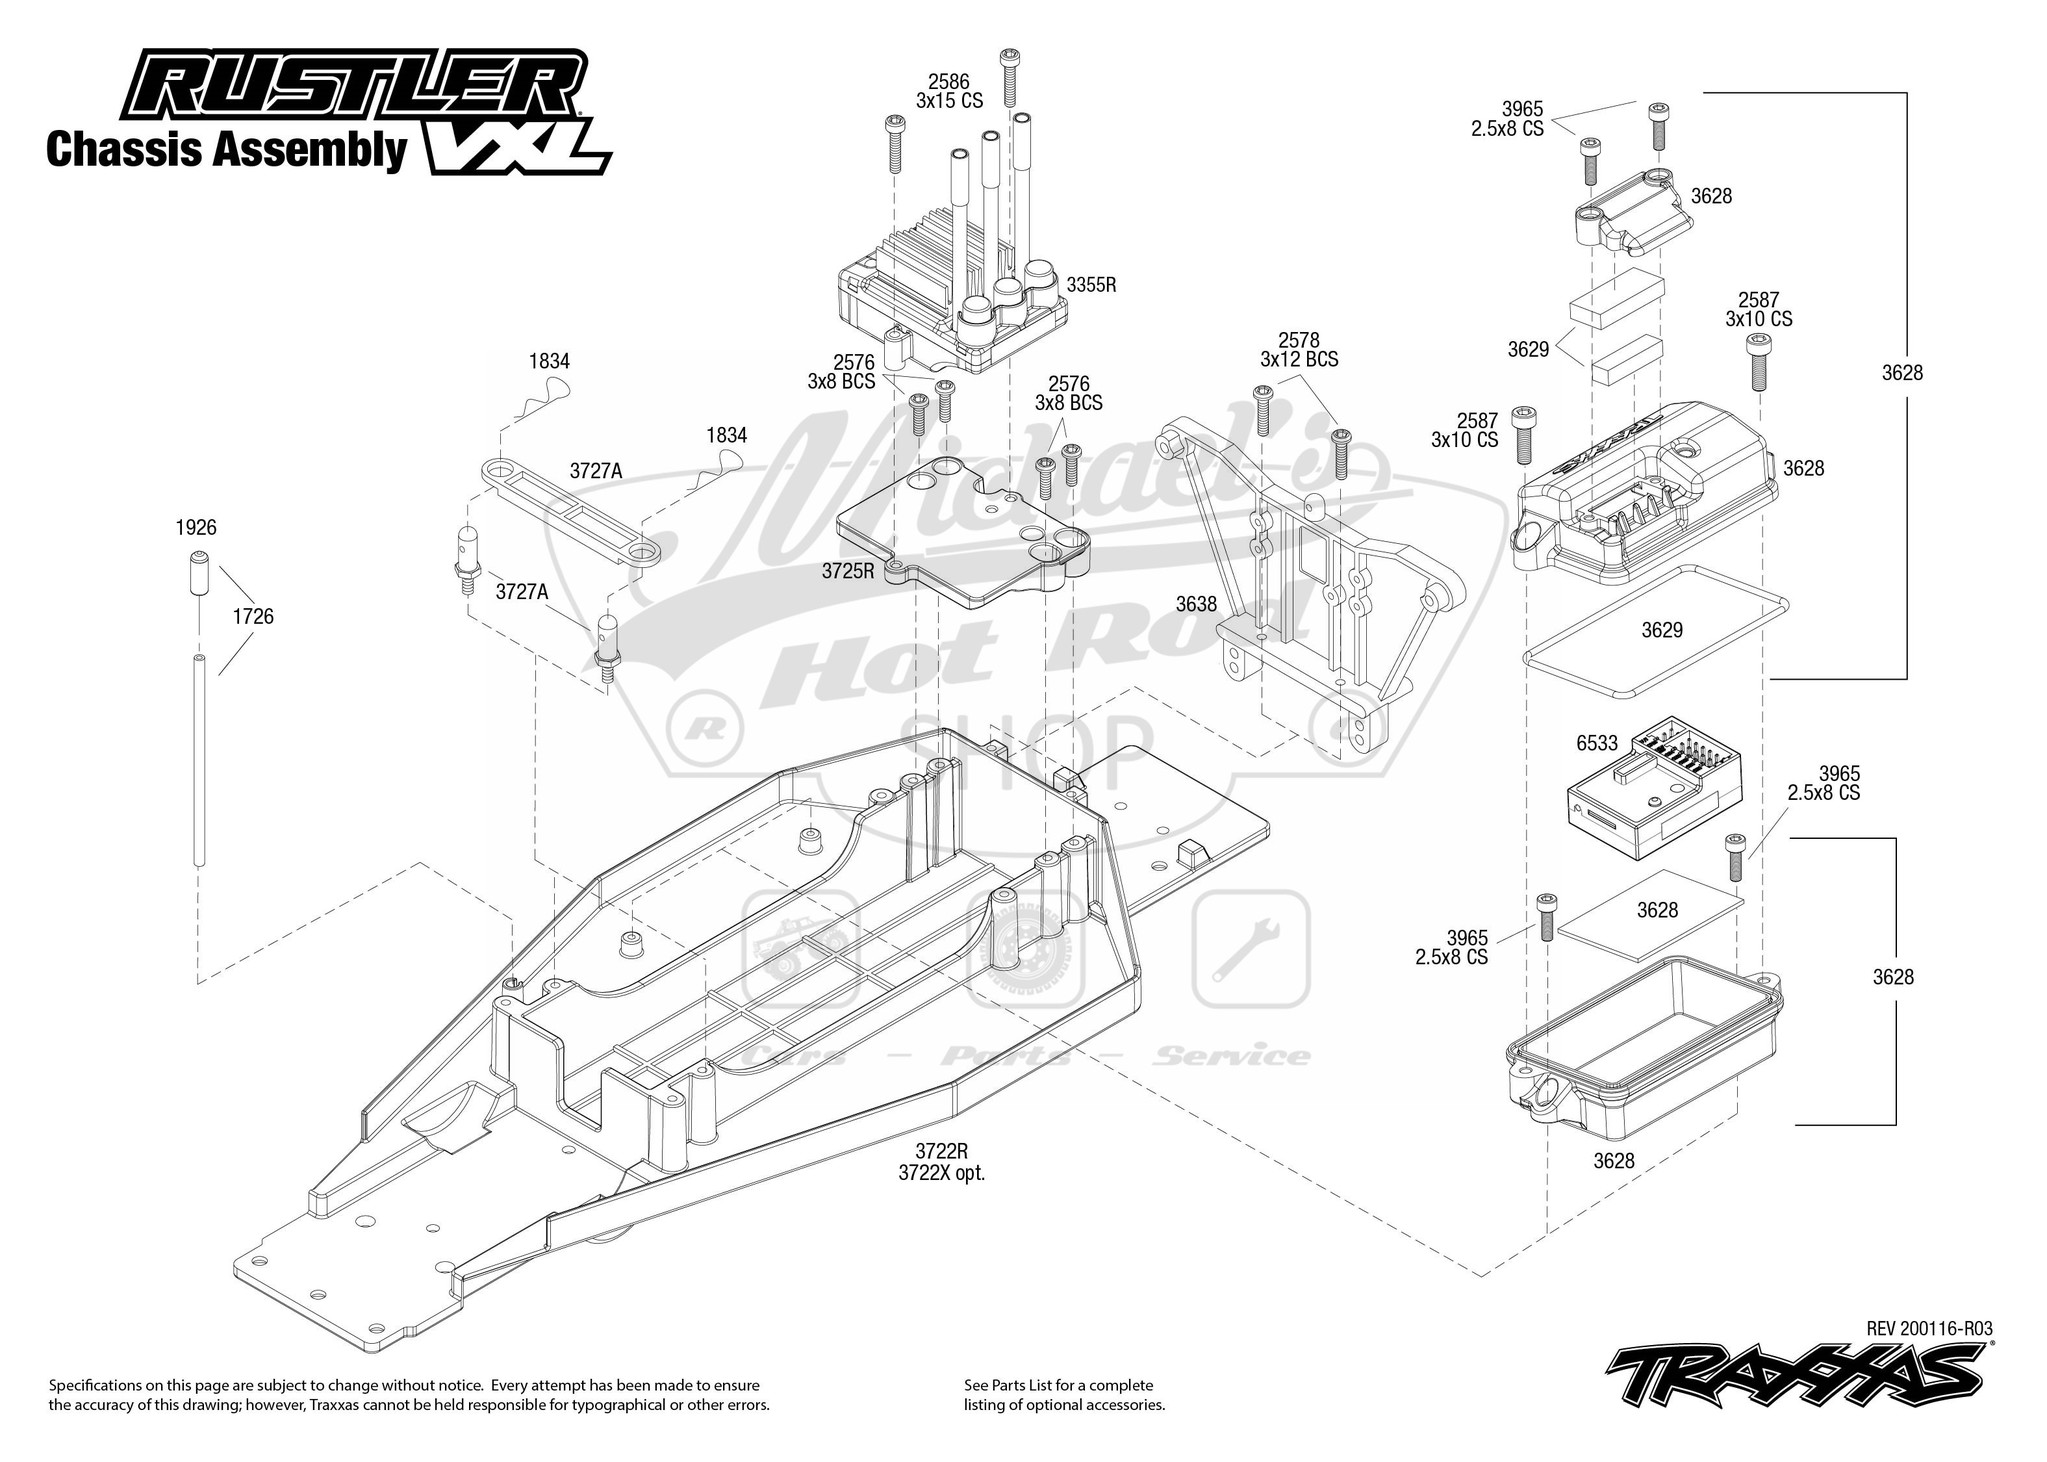 Rustler 2WD VXL Chassis Assembly